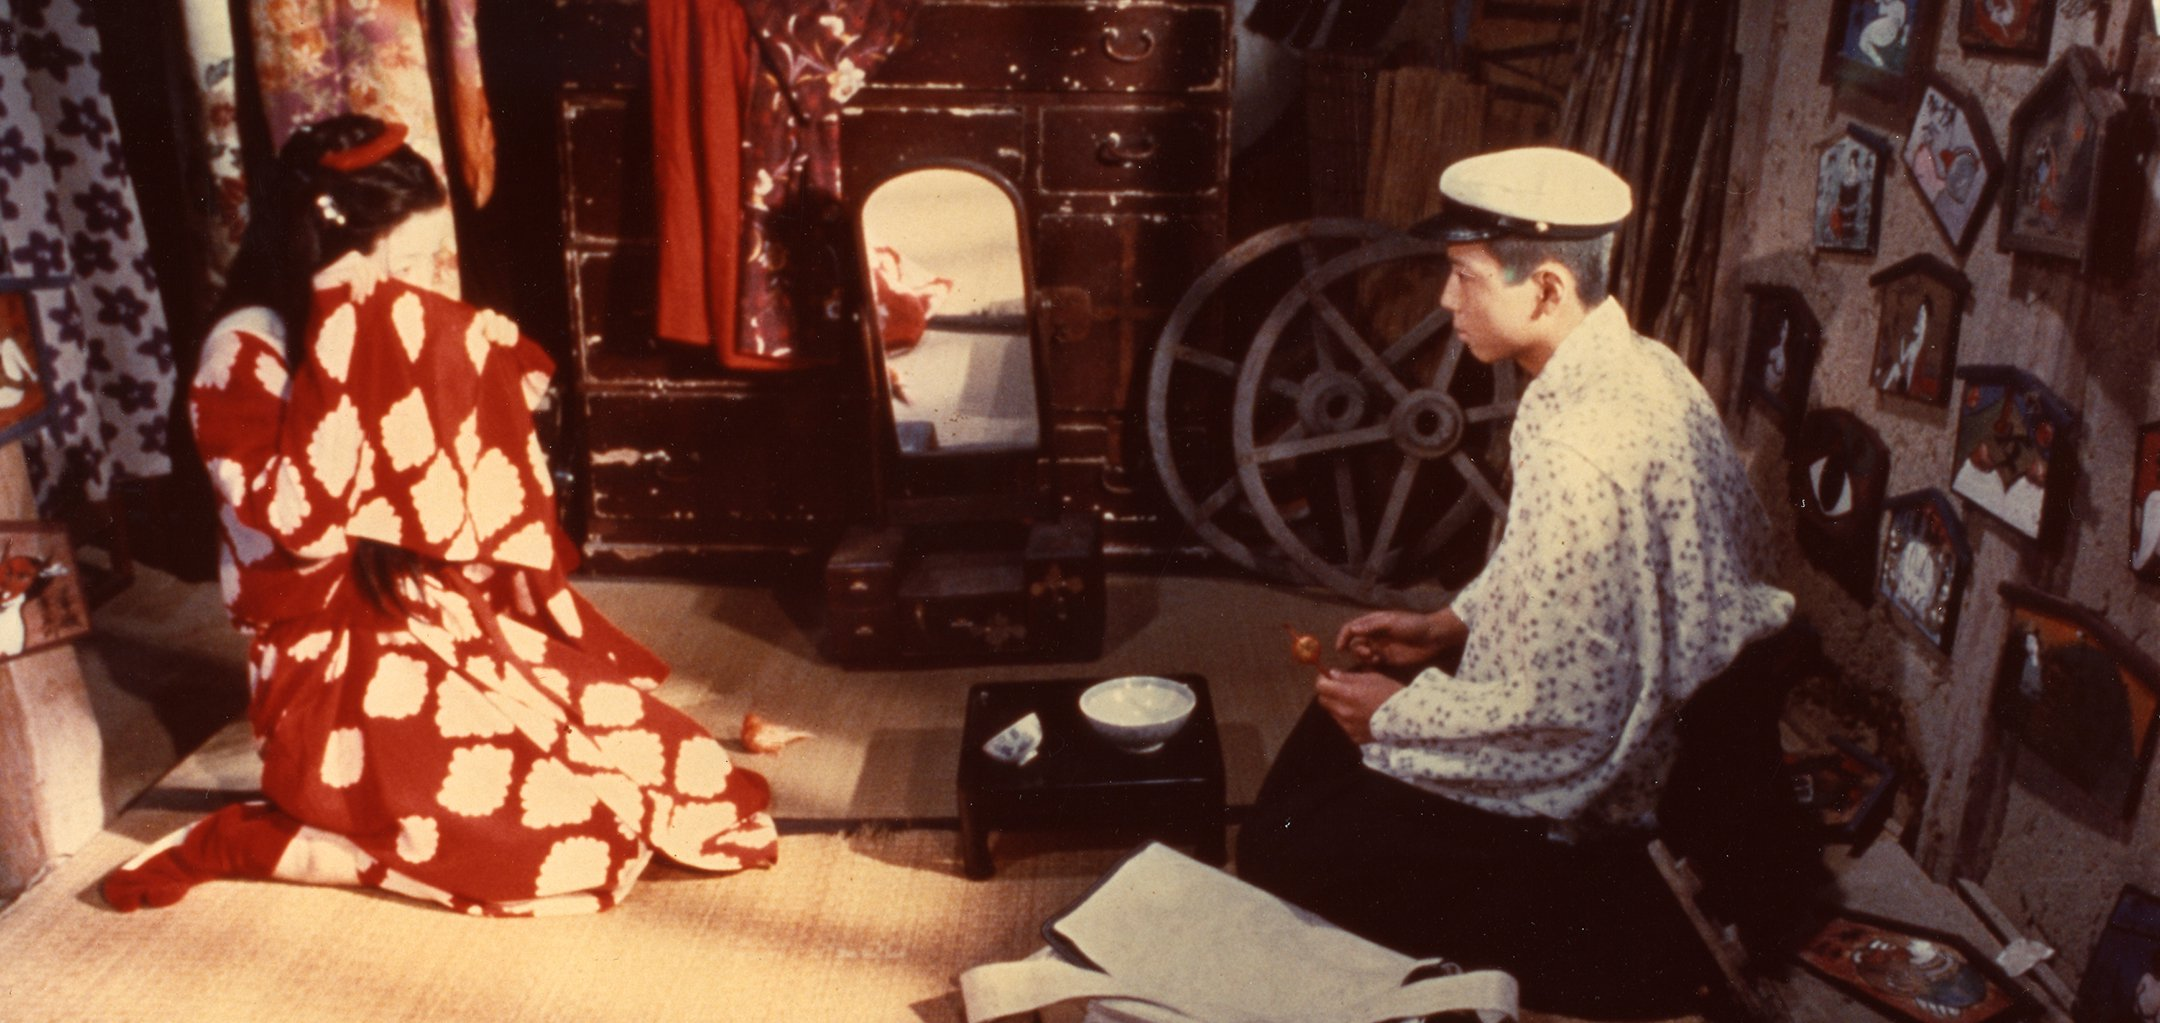 A woman and a man in traditional Japanese dress kneel inside a living room in a still from Grass Labyrinth (1979)